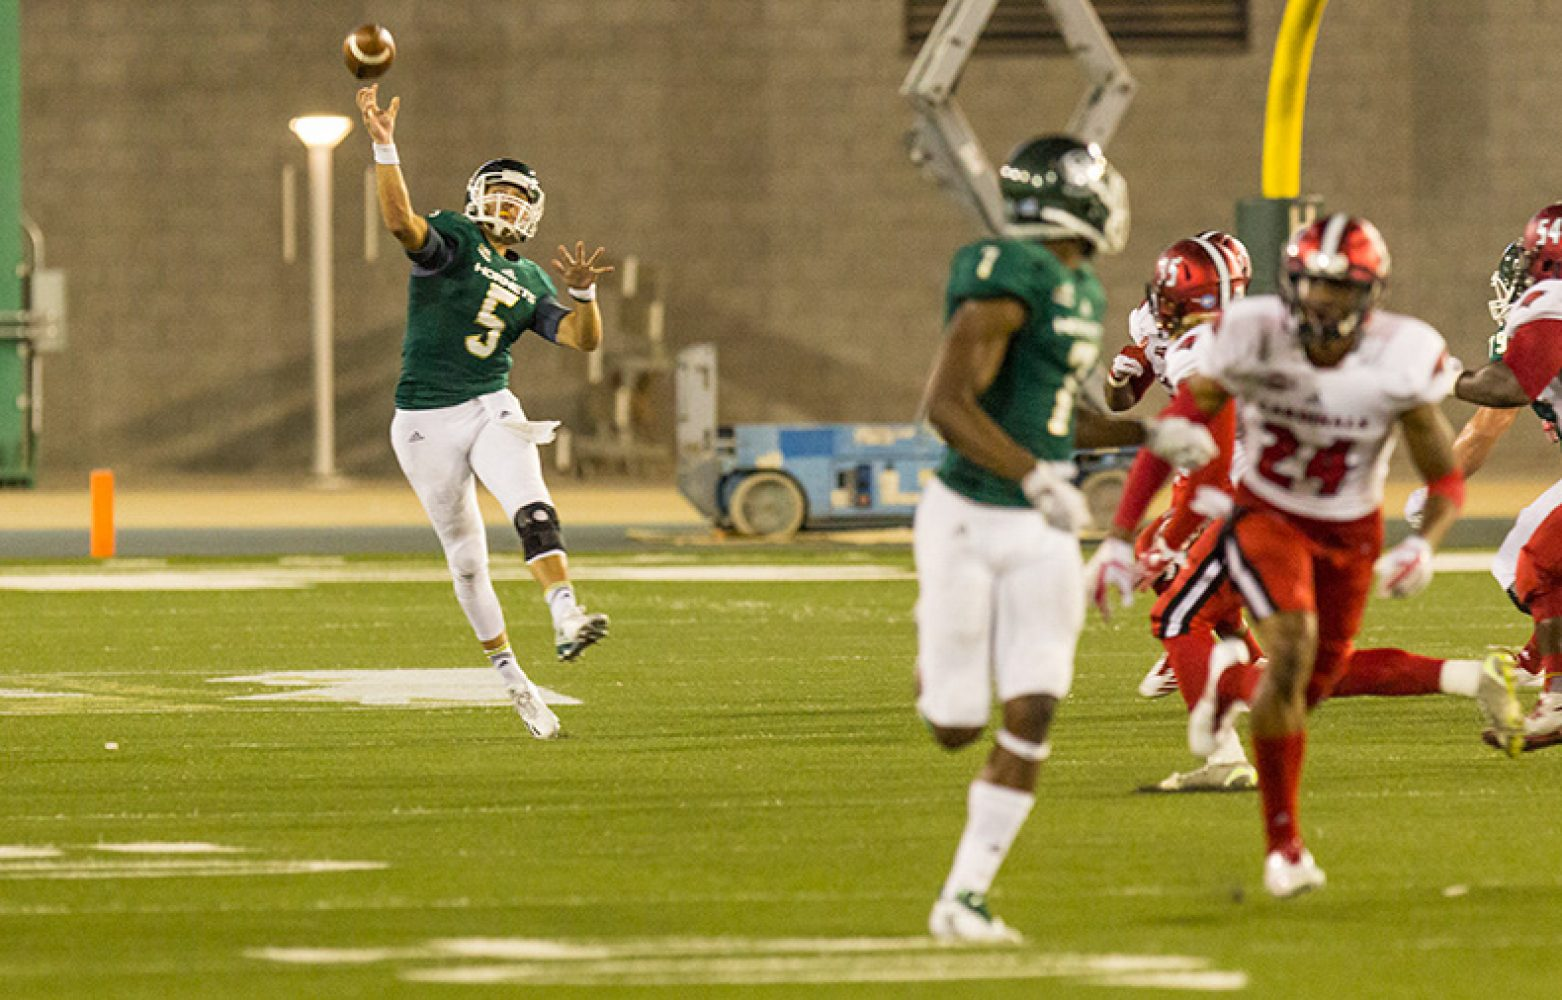 Sacramento State junior quarterback Kevin Thomson throws downfield to junior receiver Andre Lindsey against the University of Incarnate Word Saturday, Sept. 9 at Hornet Stadium. Lindsey finished with four catches for 176 yards and one touchdown.